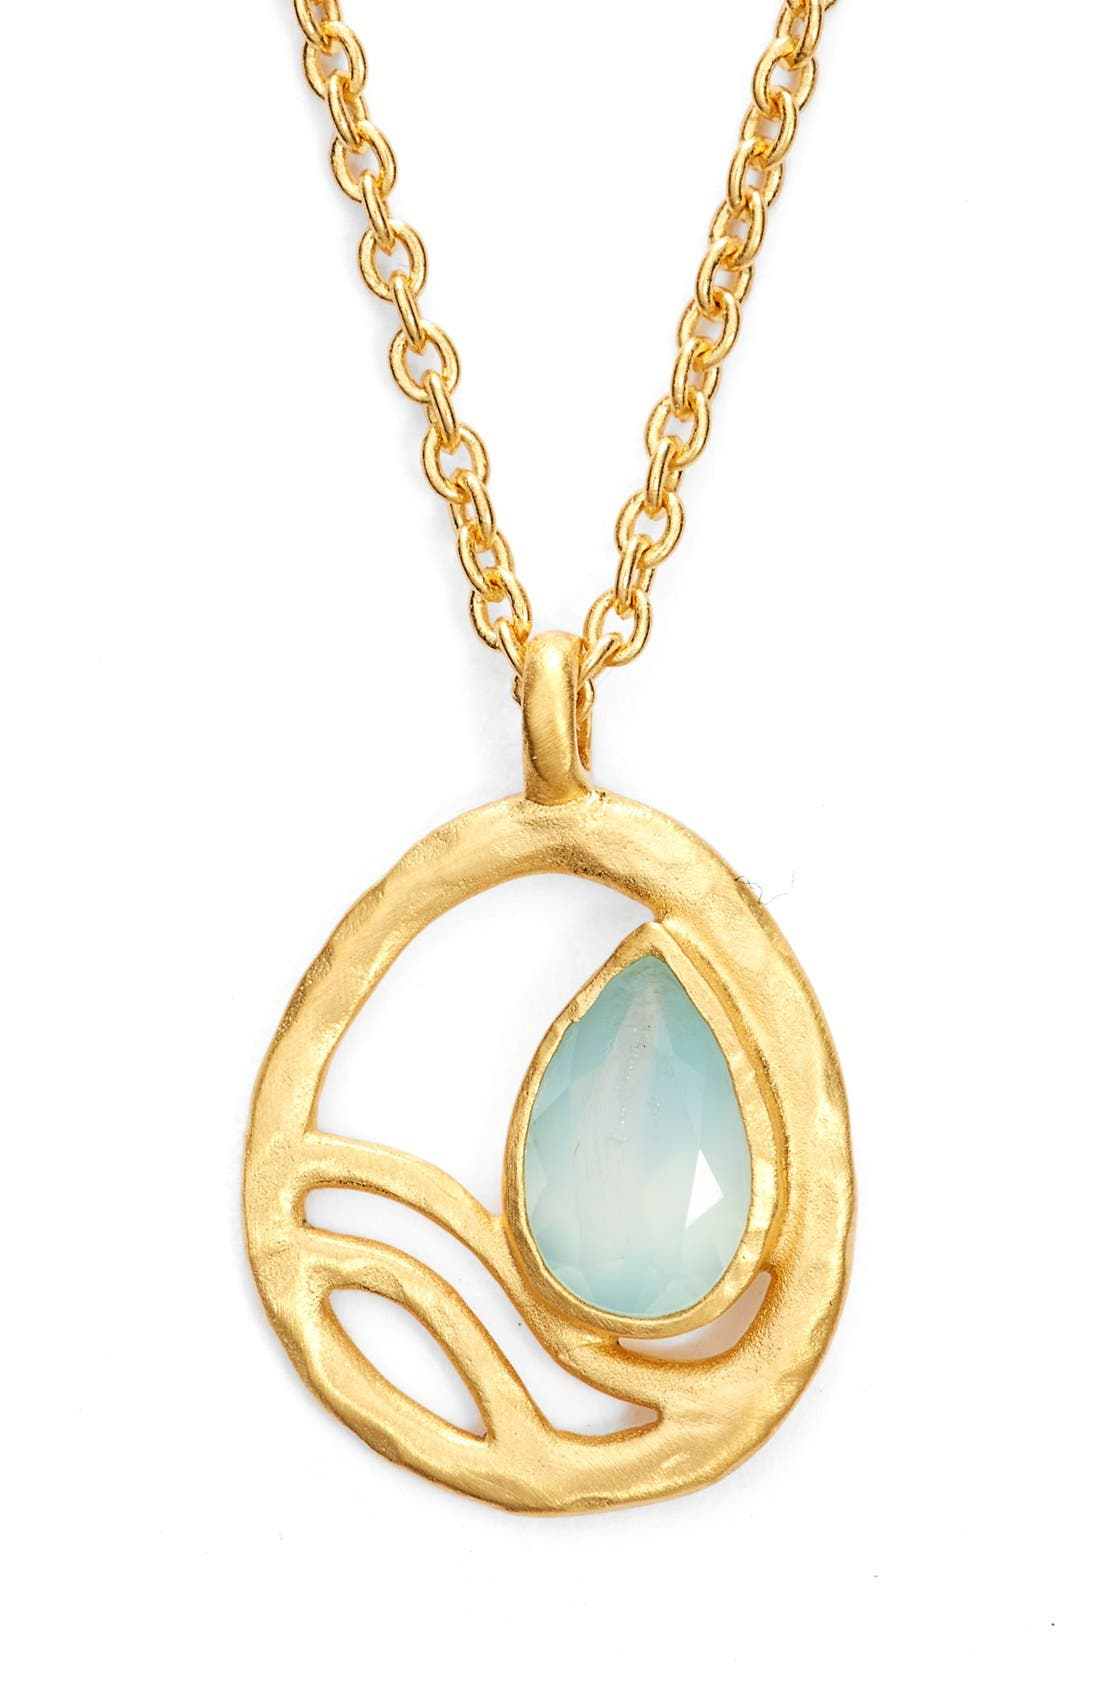 Alternate Image 1 Selected - Satya Jewelry 'Oasis' Pendant Necklace